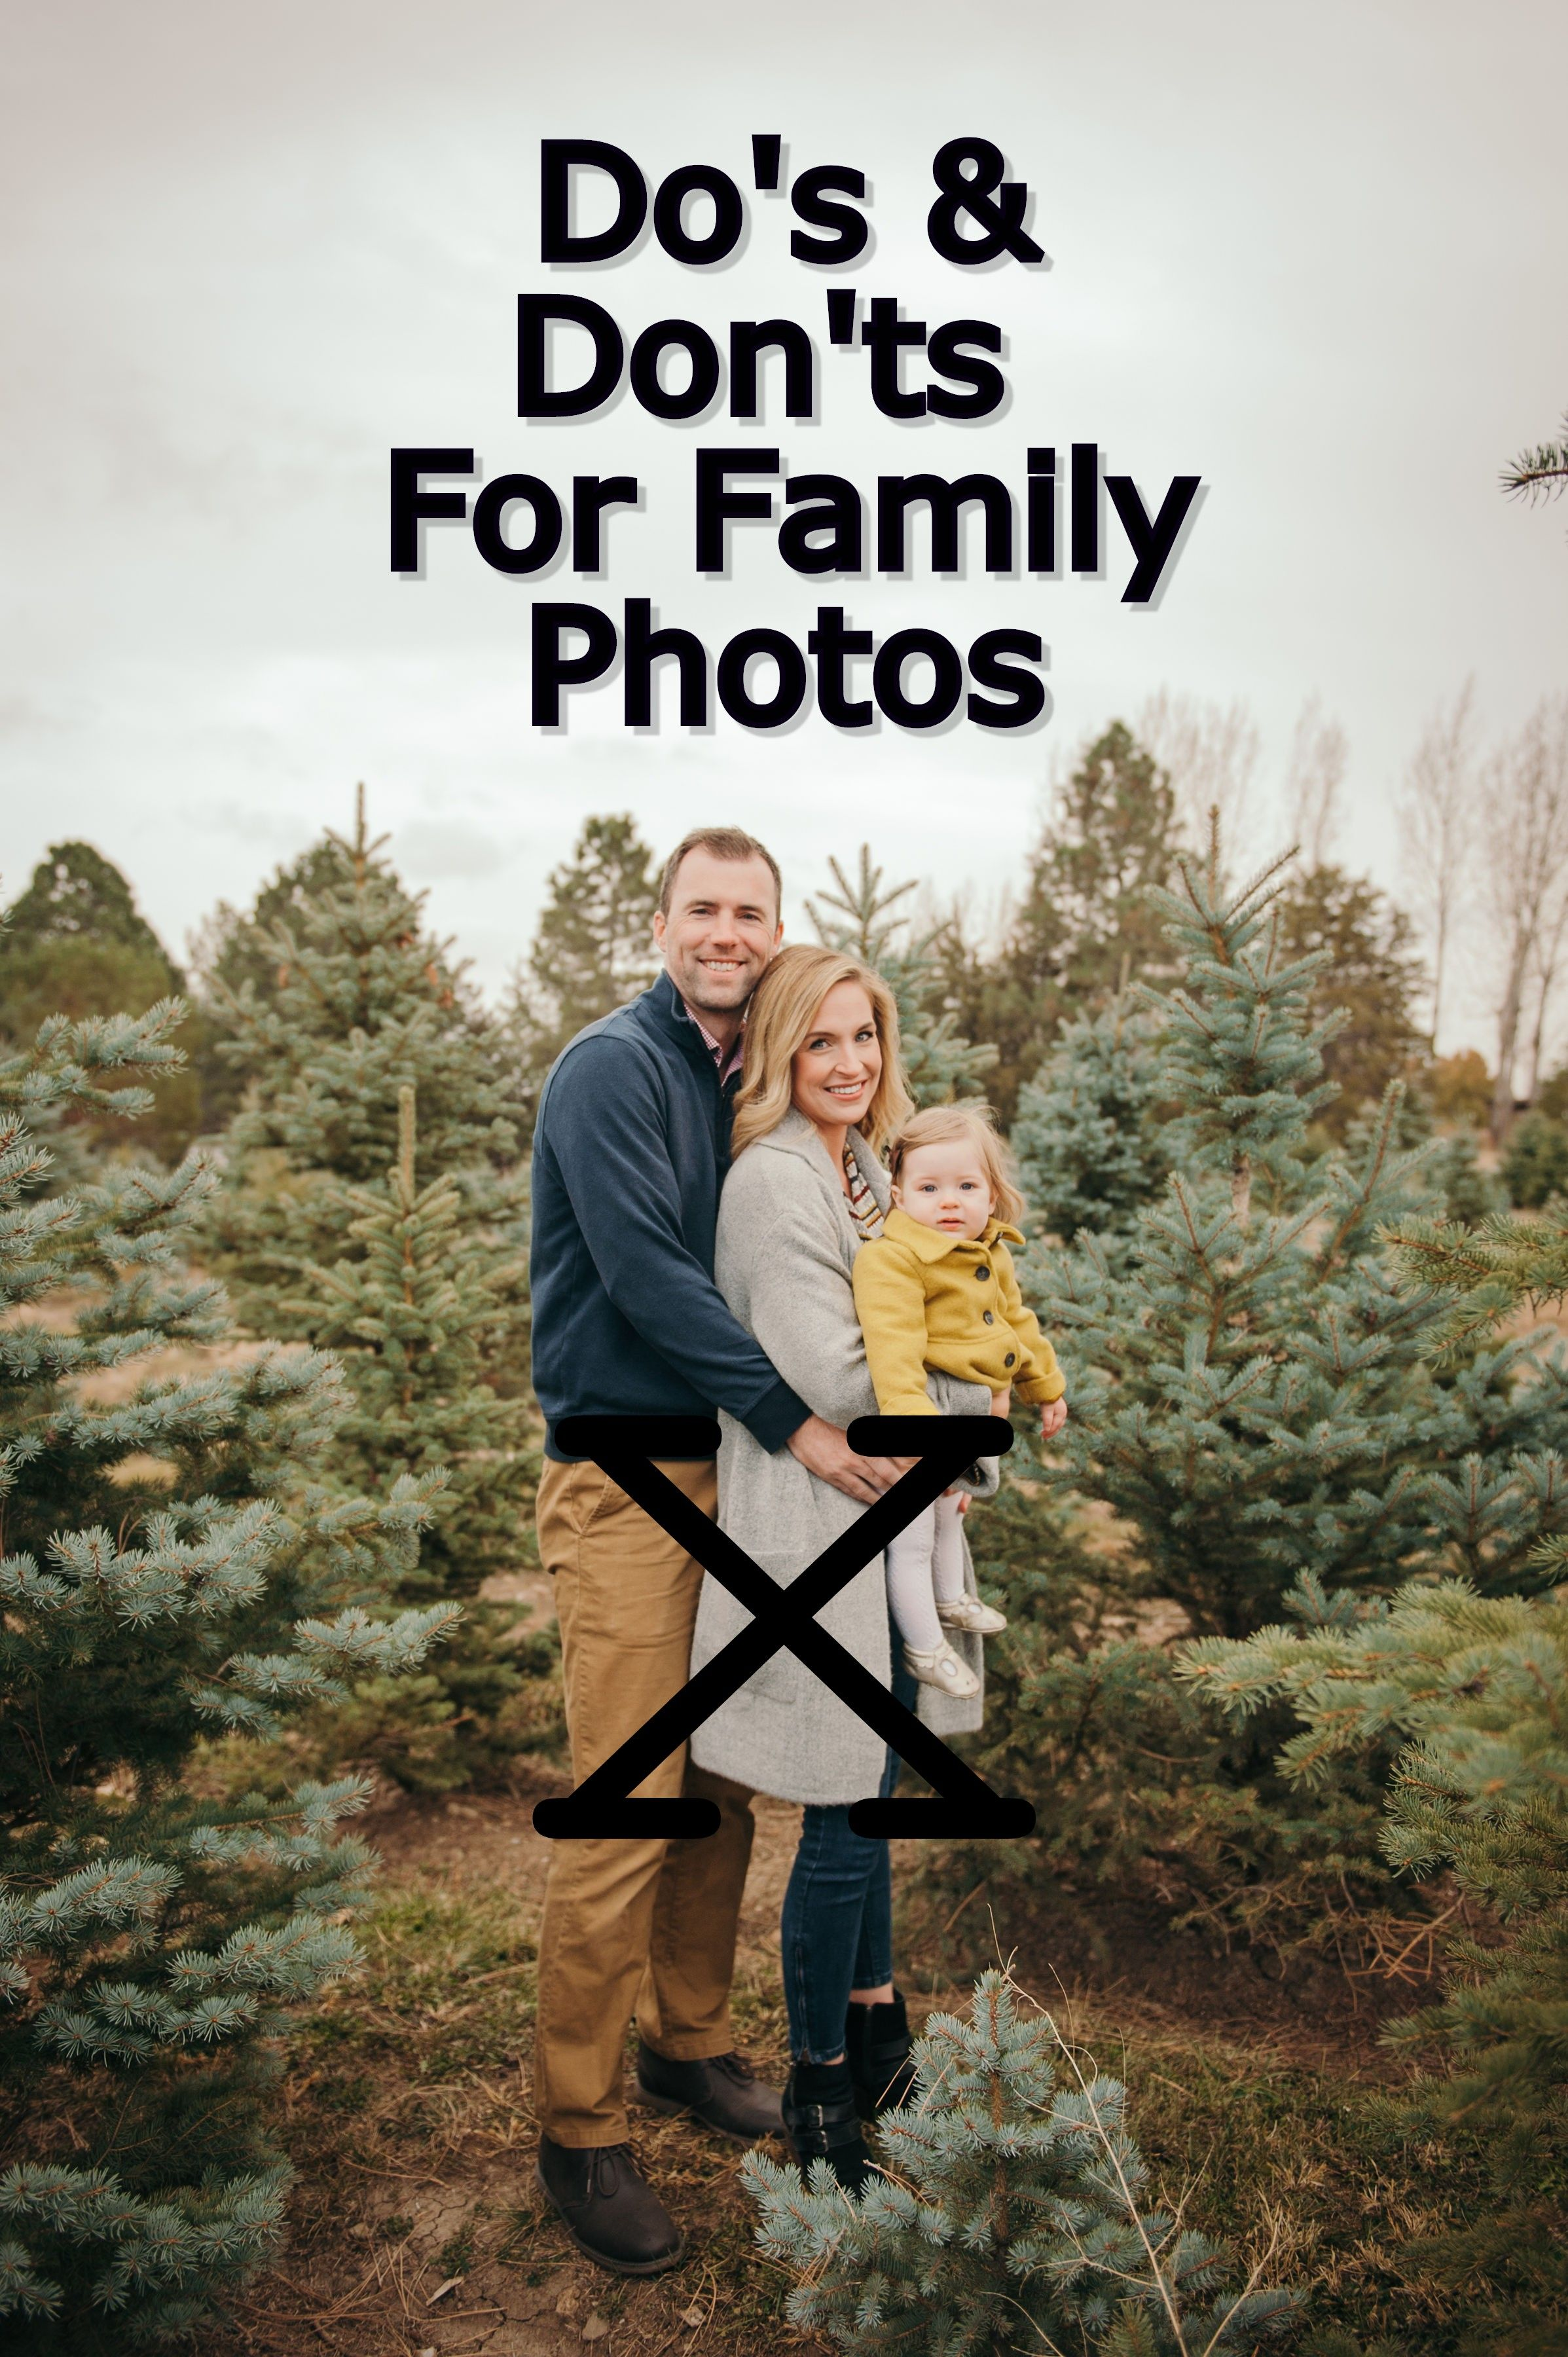 Tips for a quality family photo